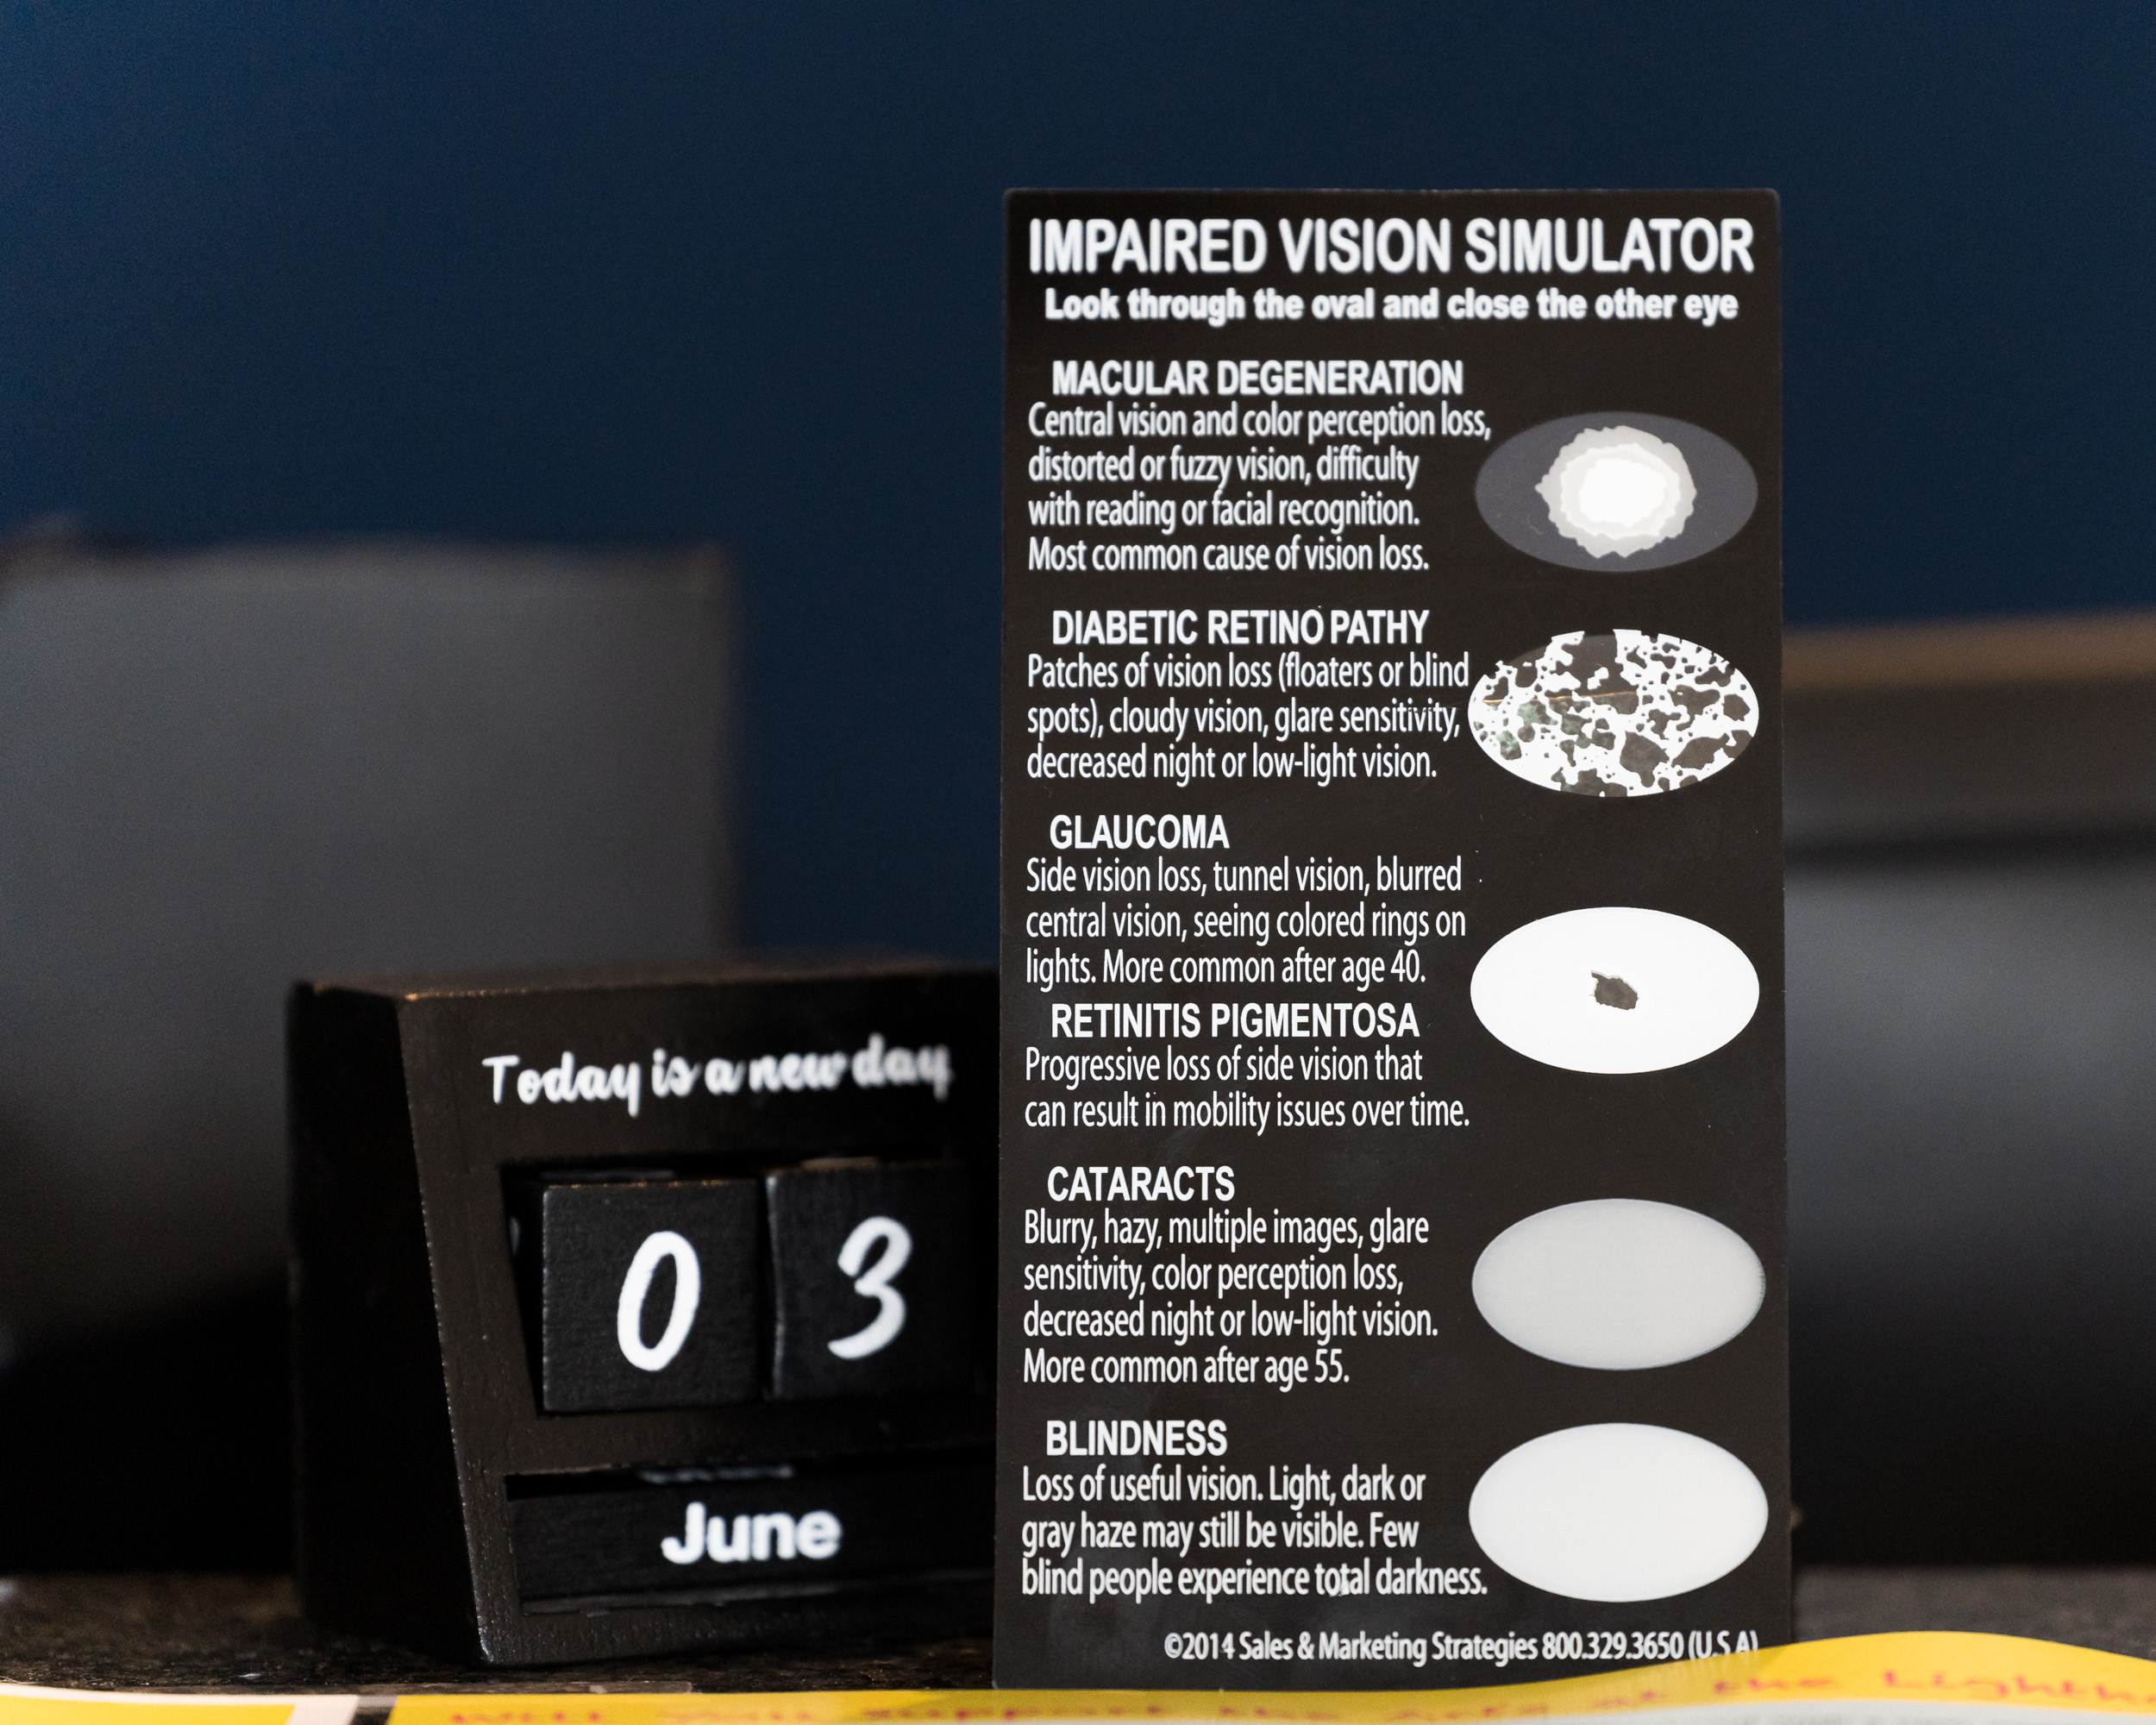 An impaired vision simulator